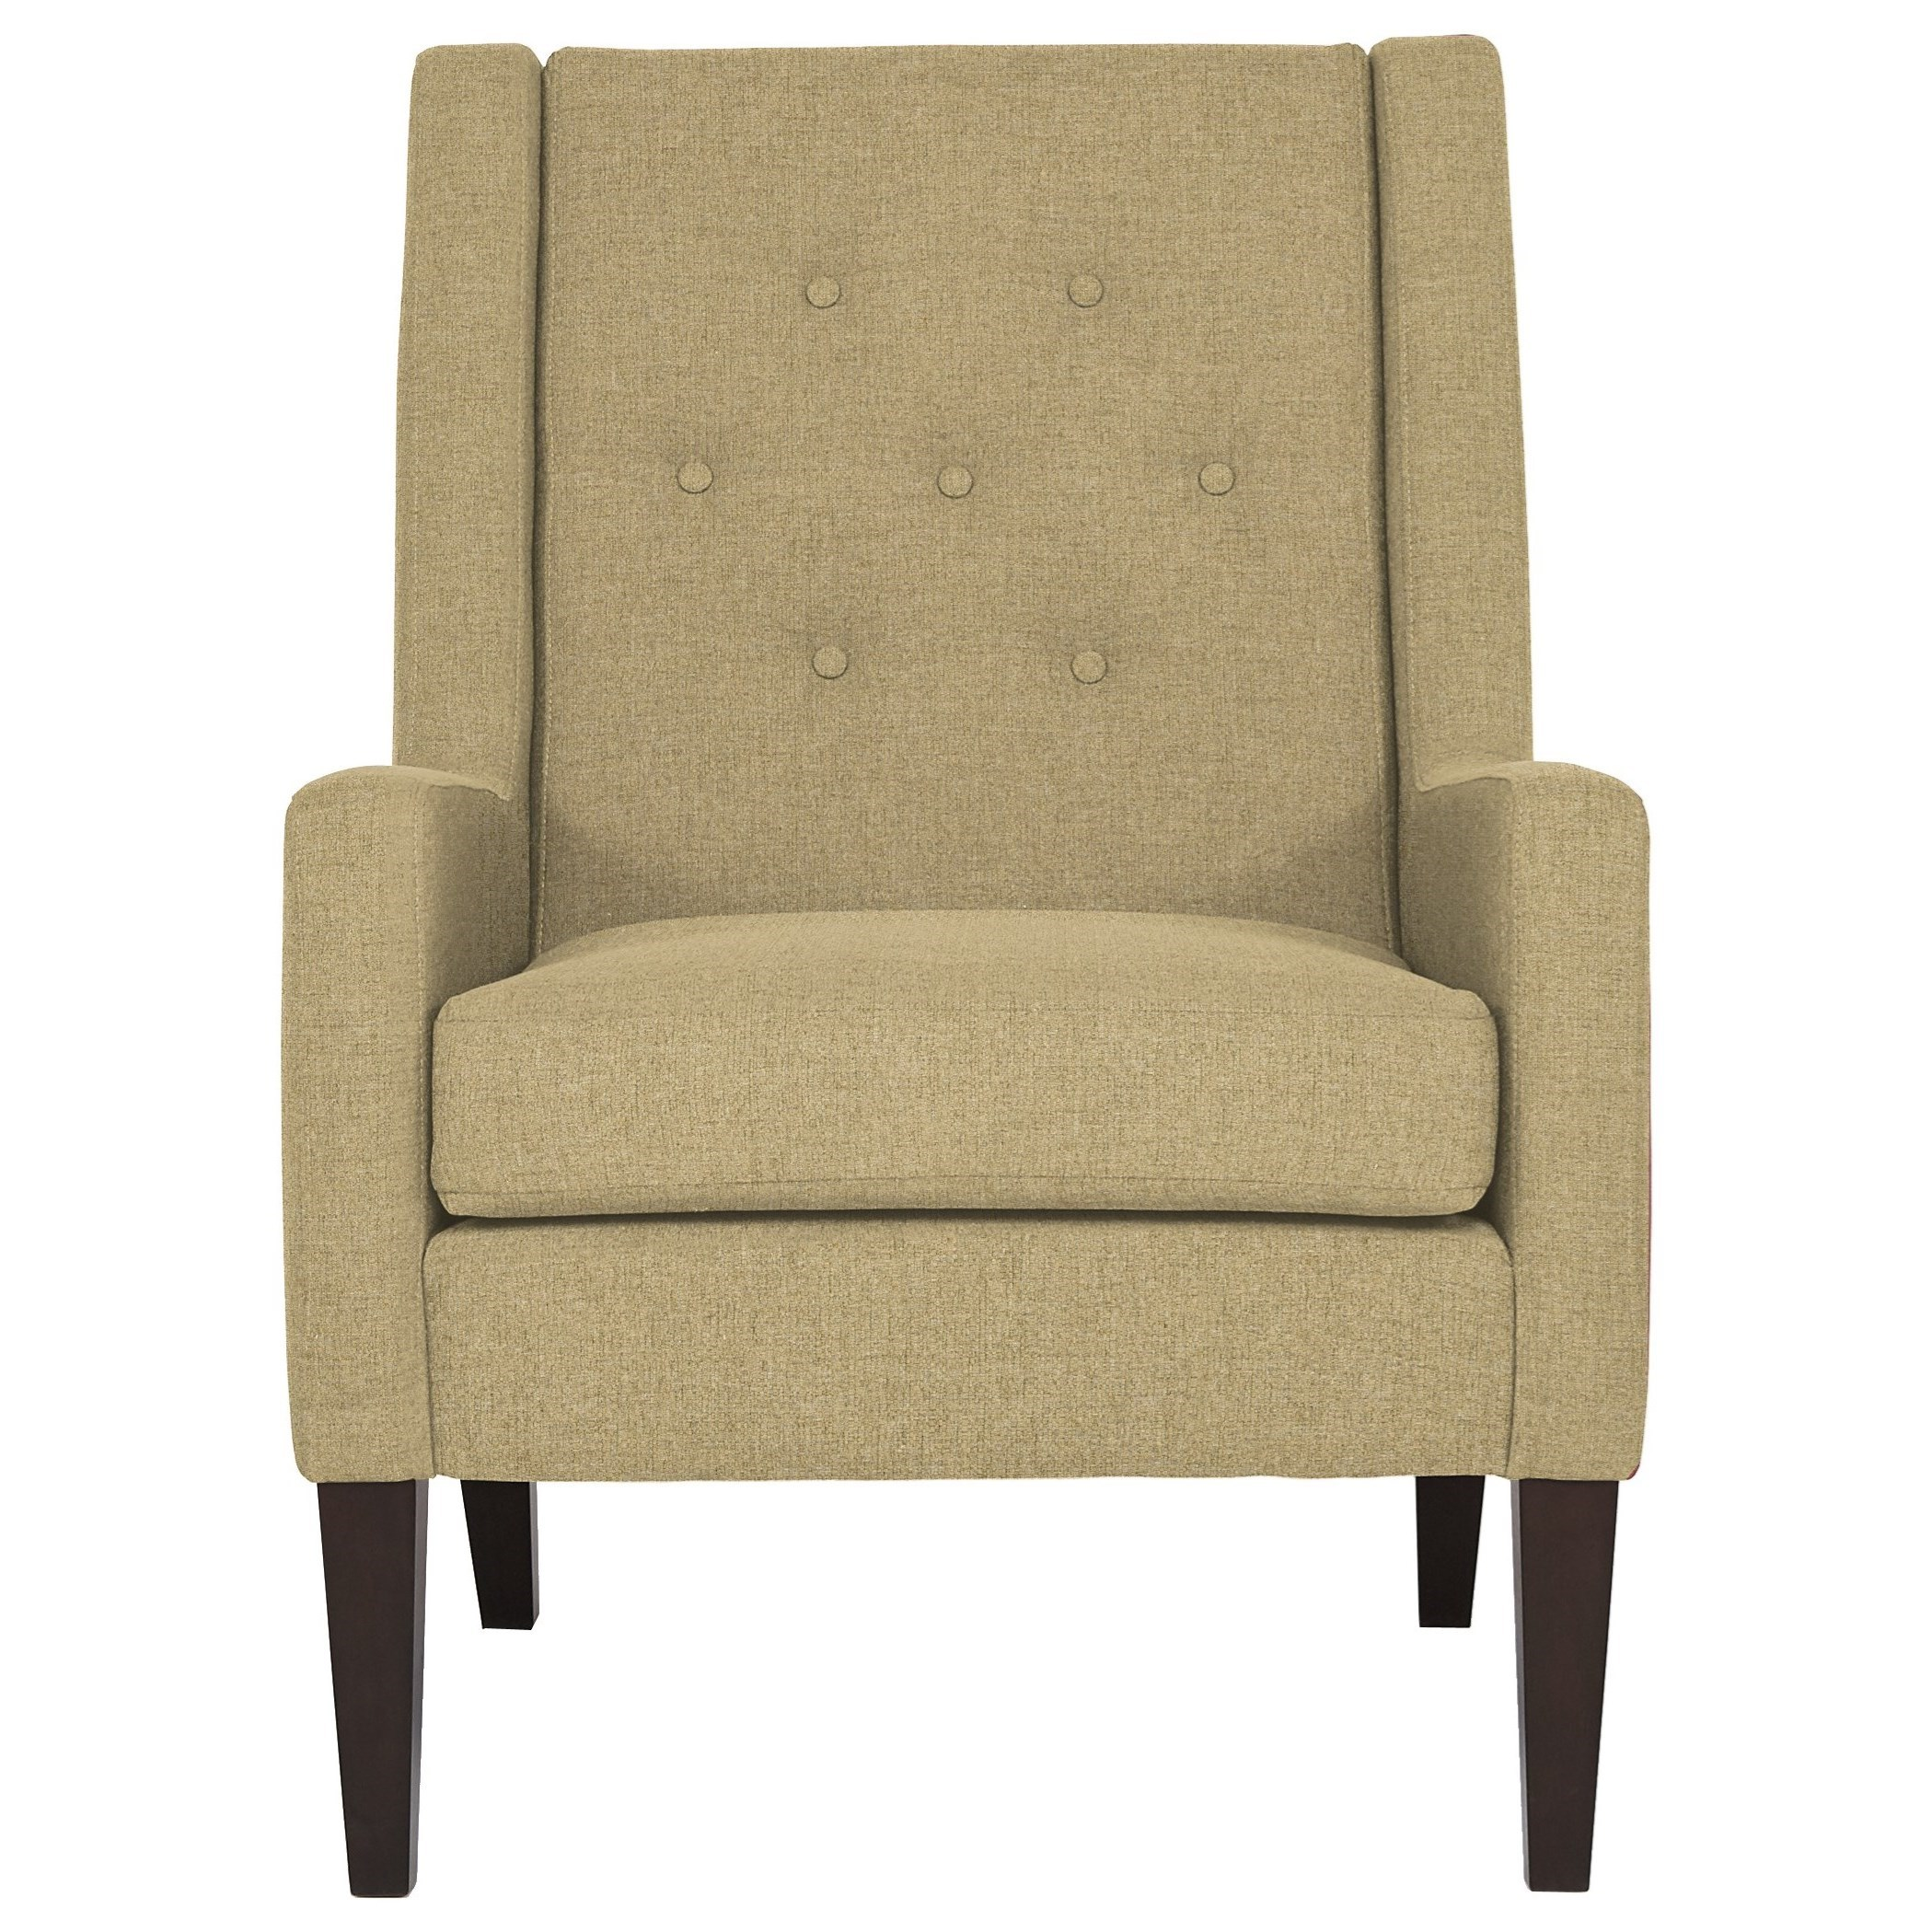 Accent Chairs Chair by Best Home Furnishings at Walker's Furniture